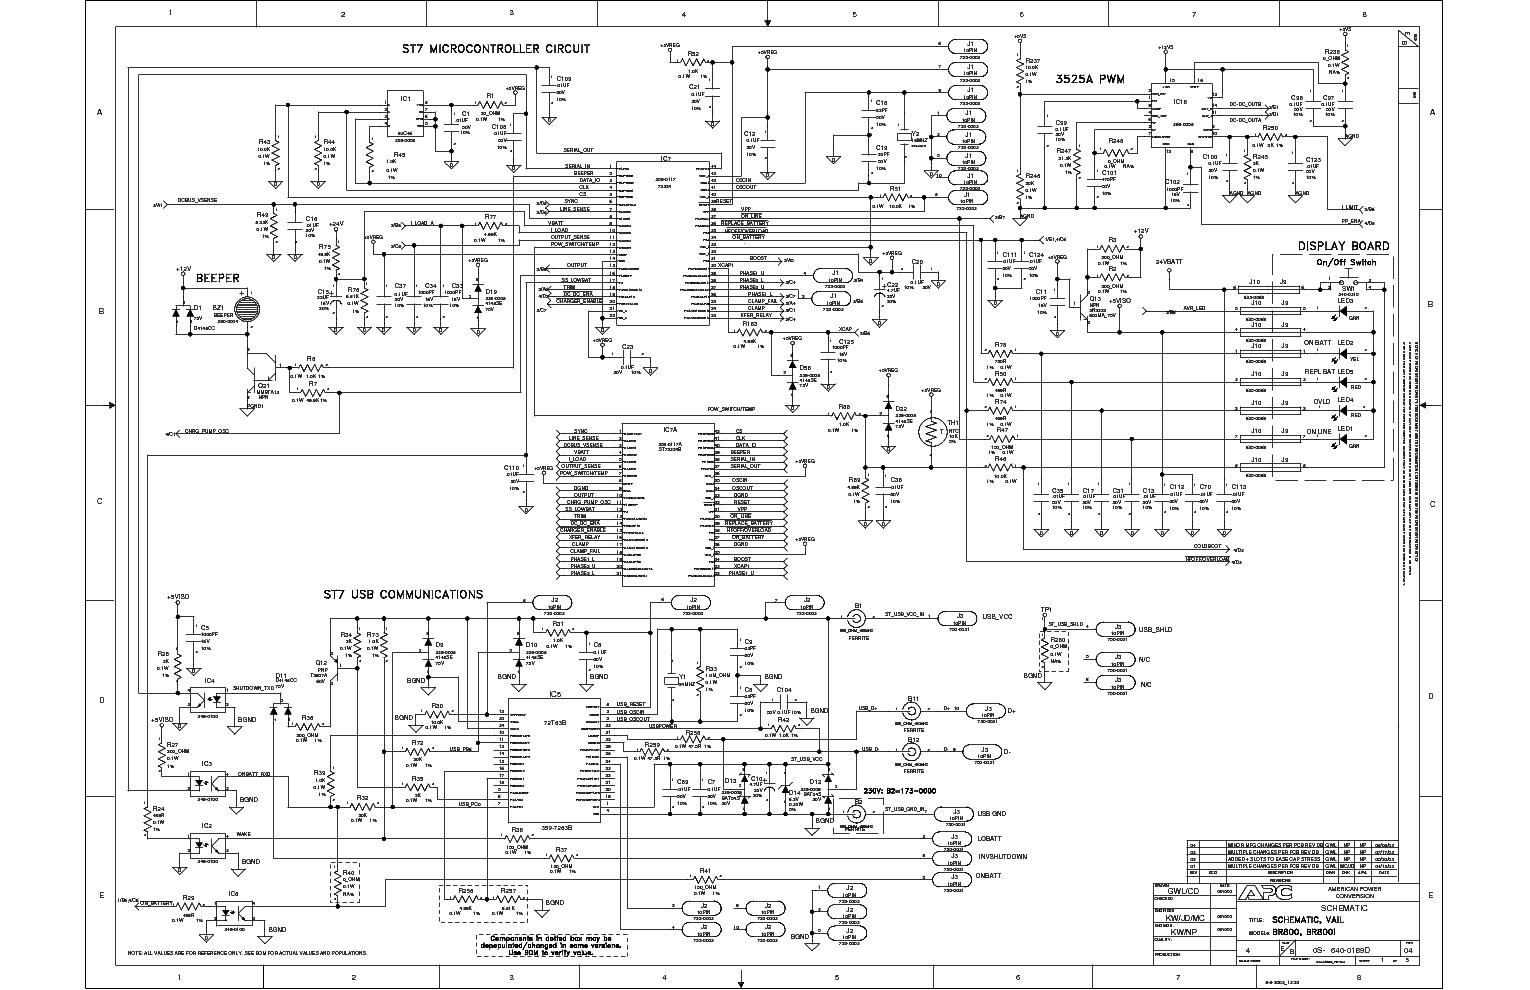 Kubota L2500 Wiring Diagram Detailed Schematic Diagrams L4200 Gibson Tractor Will Be A Thing U2022 L275